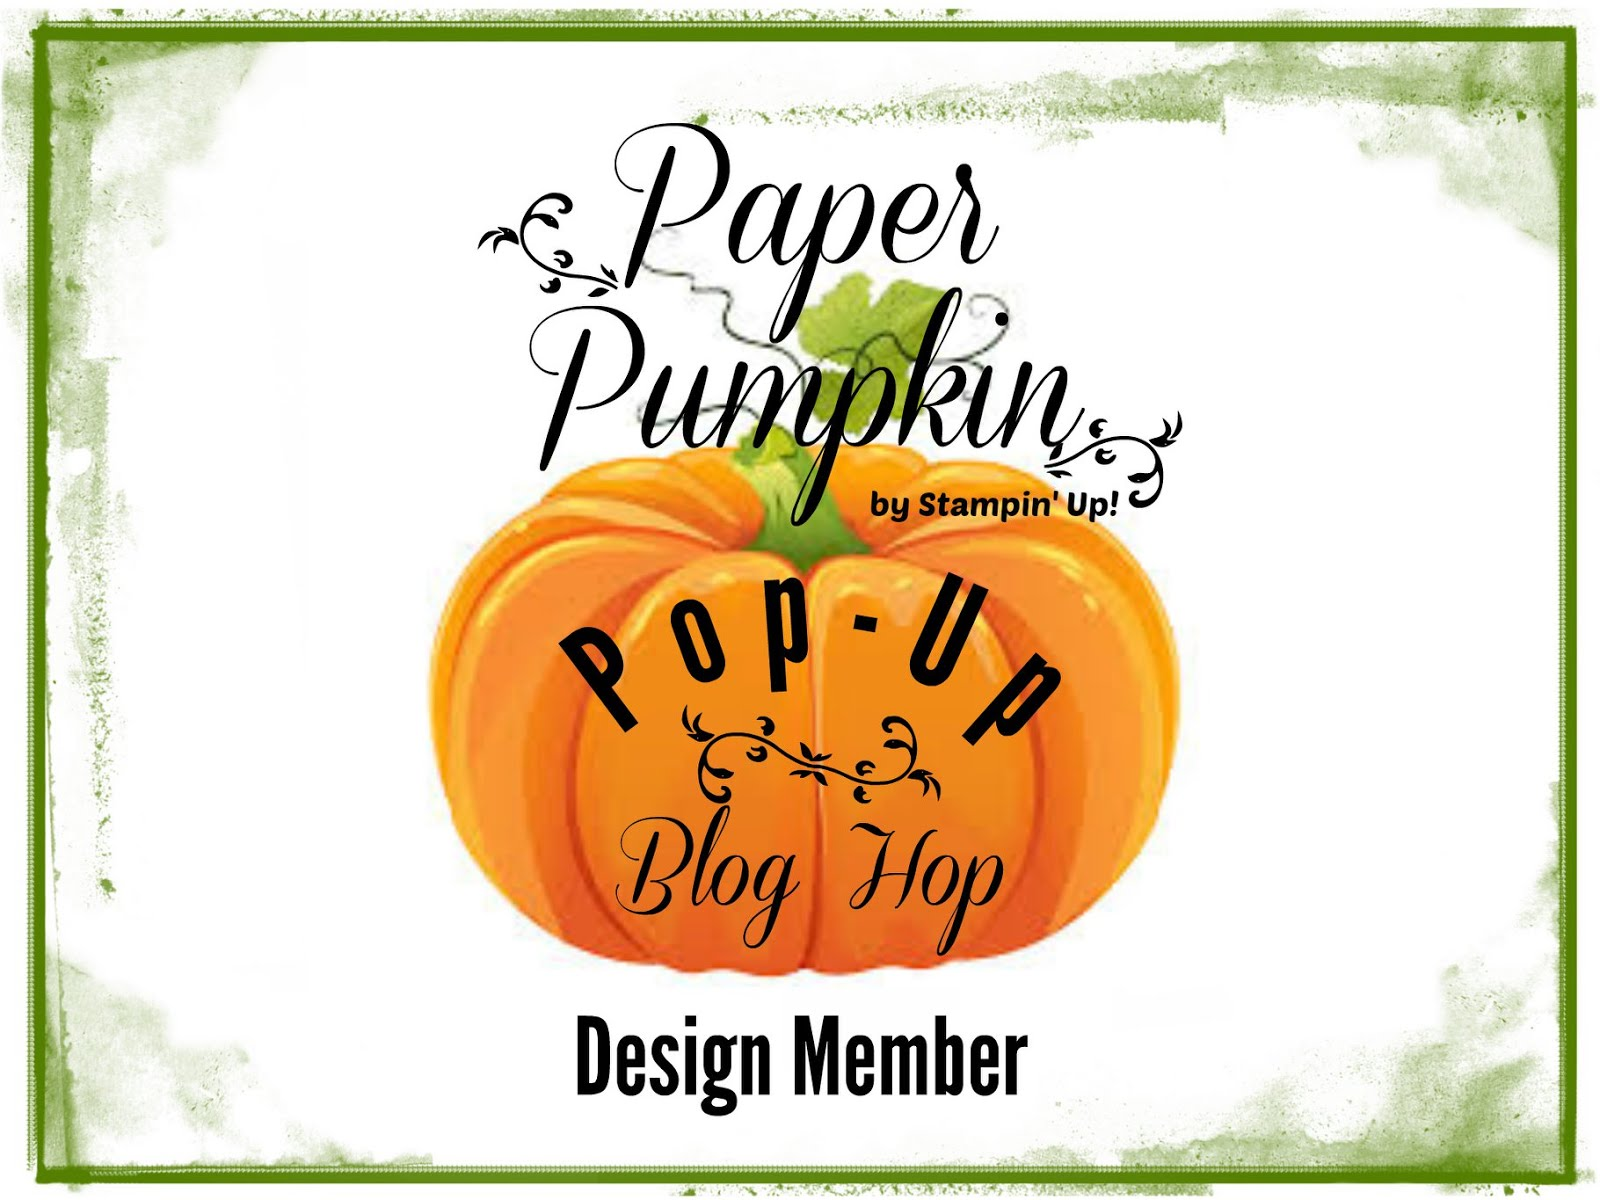 Paper Pumpkin                Pop-up Blog Hop